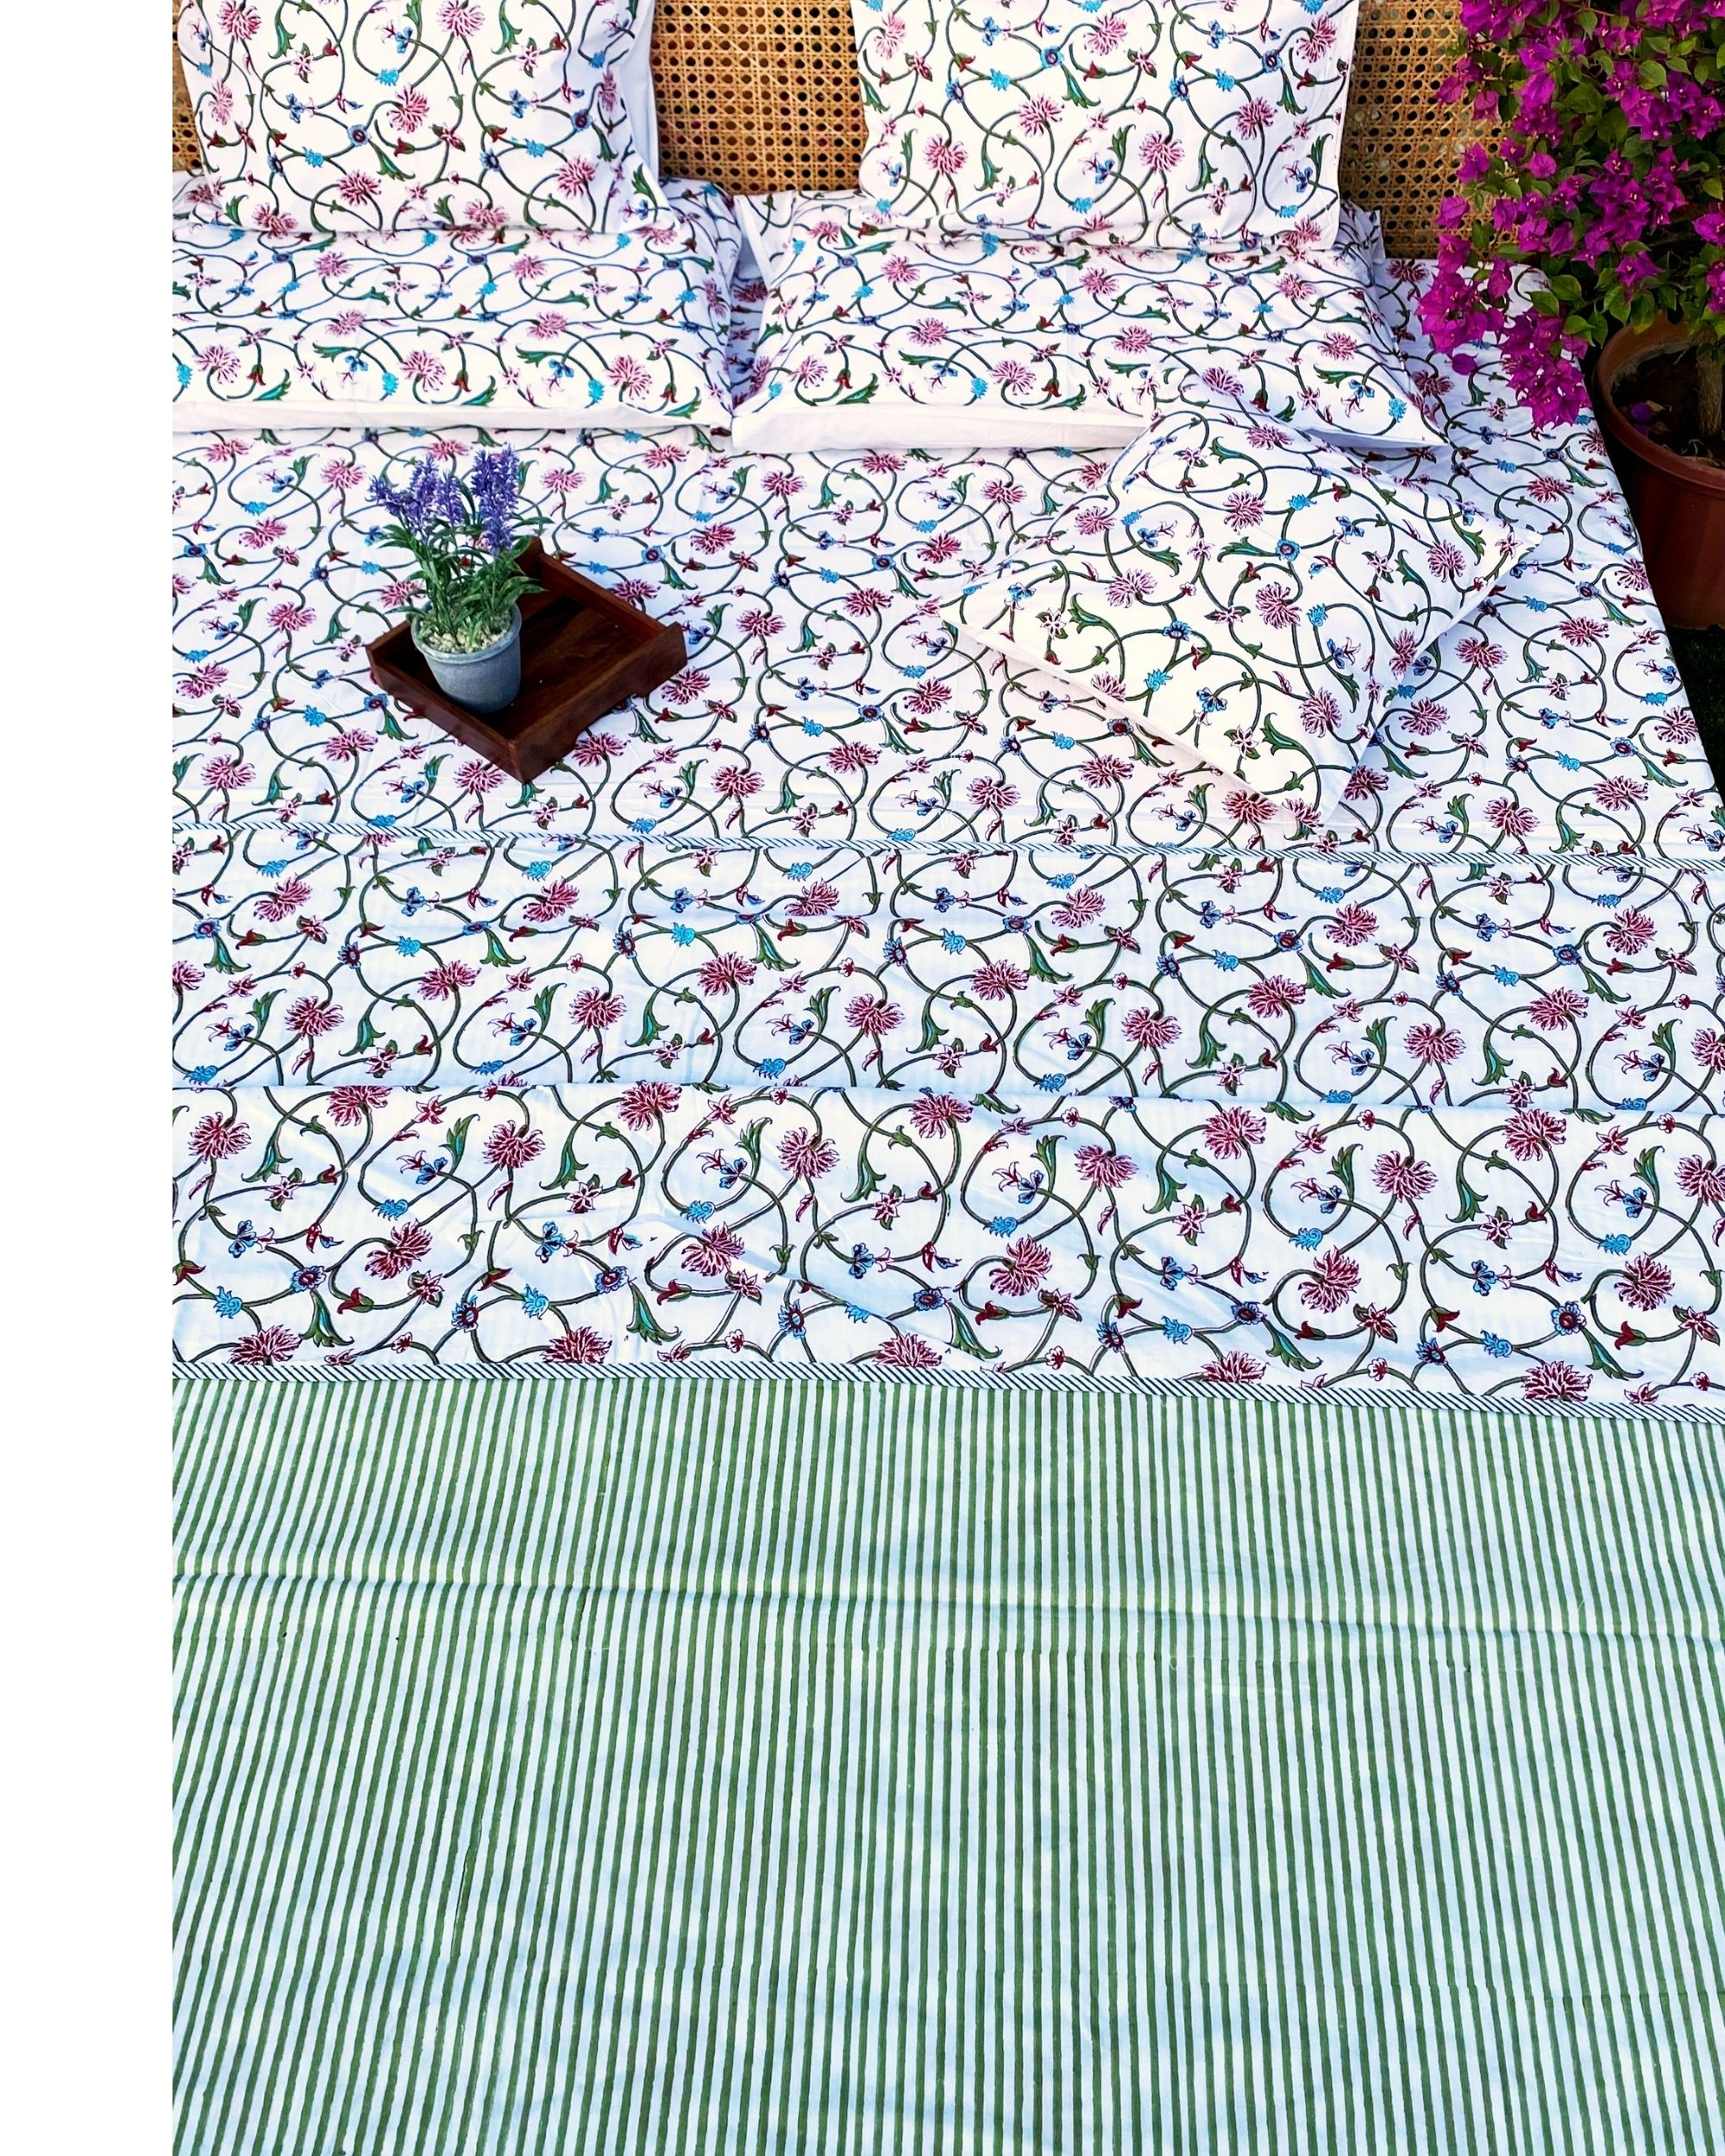 Floral jaal square and lumbar cushion covers - set of 4